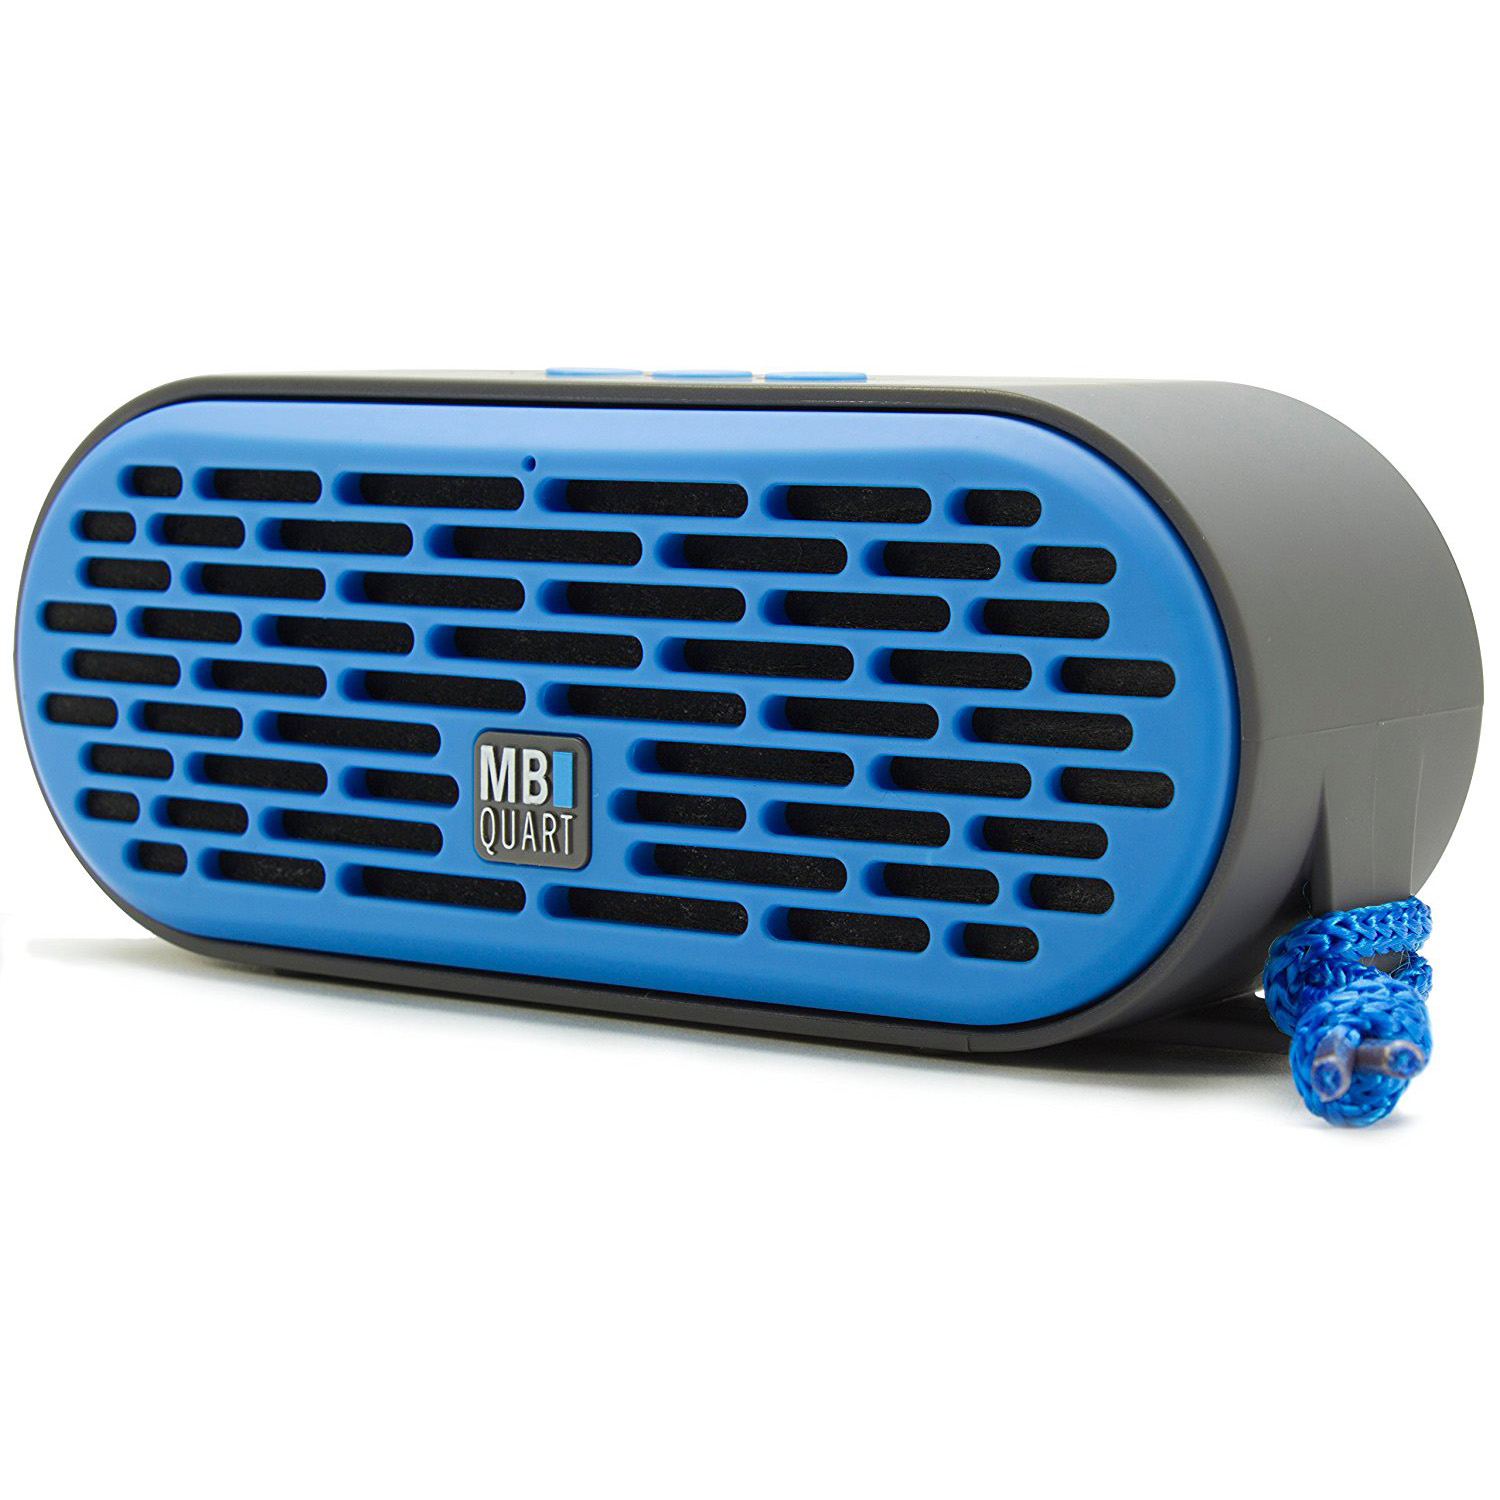 MB Quart QUBThree USB Wireless Rechargeable Portable Bluetooth Speaker, Blue